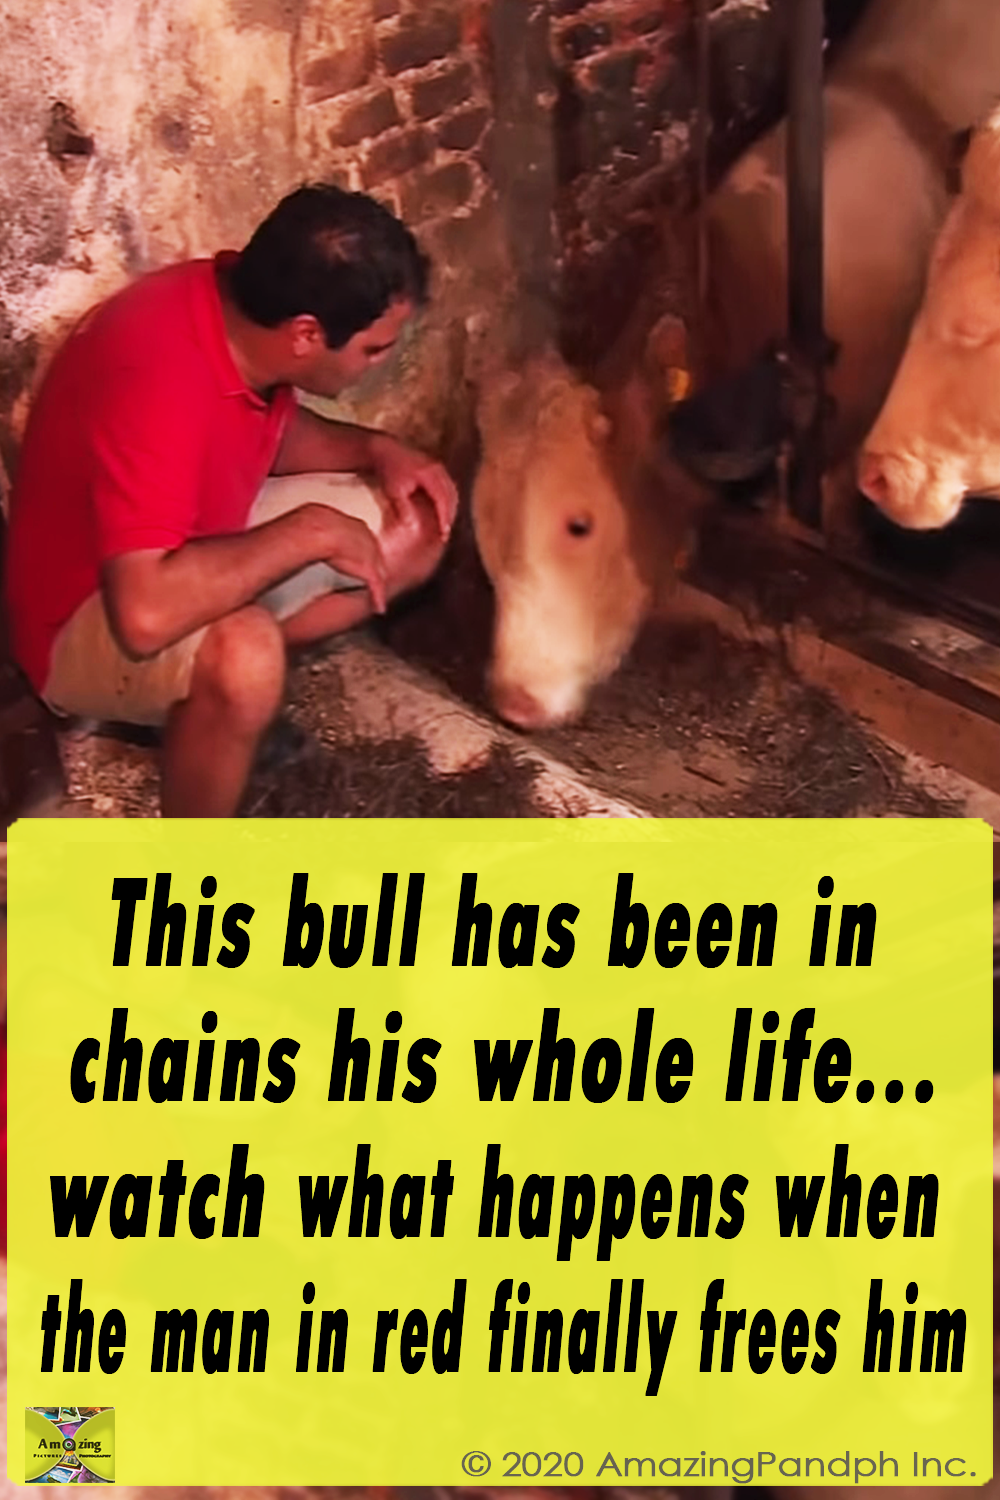 Bull, Free, Rescue, Help, Chained, Life,